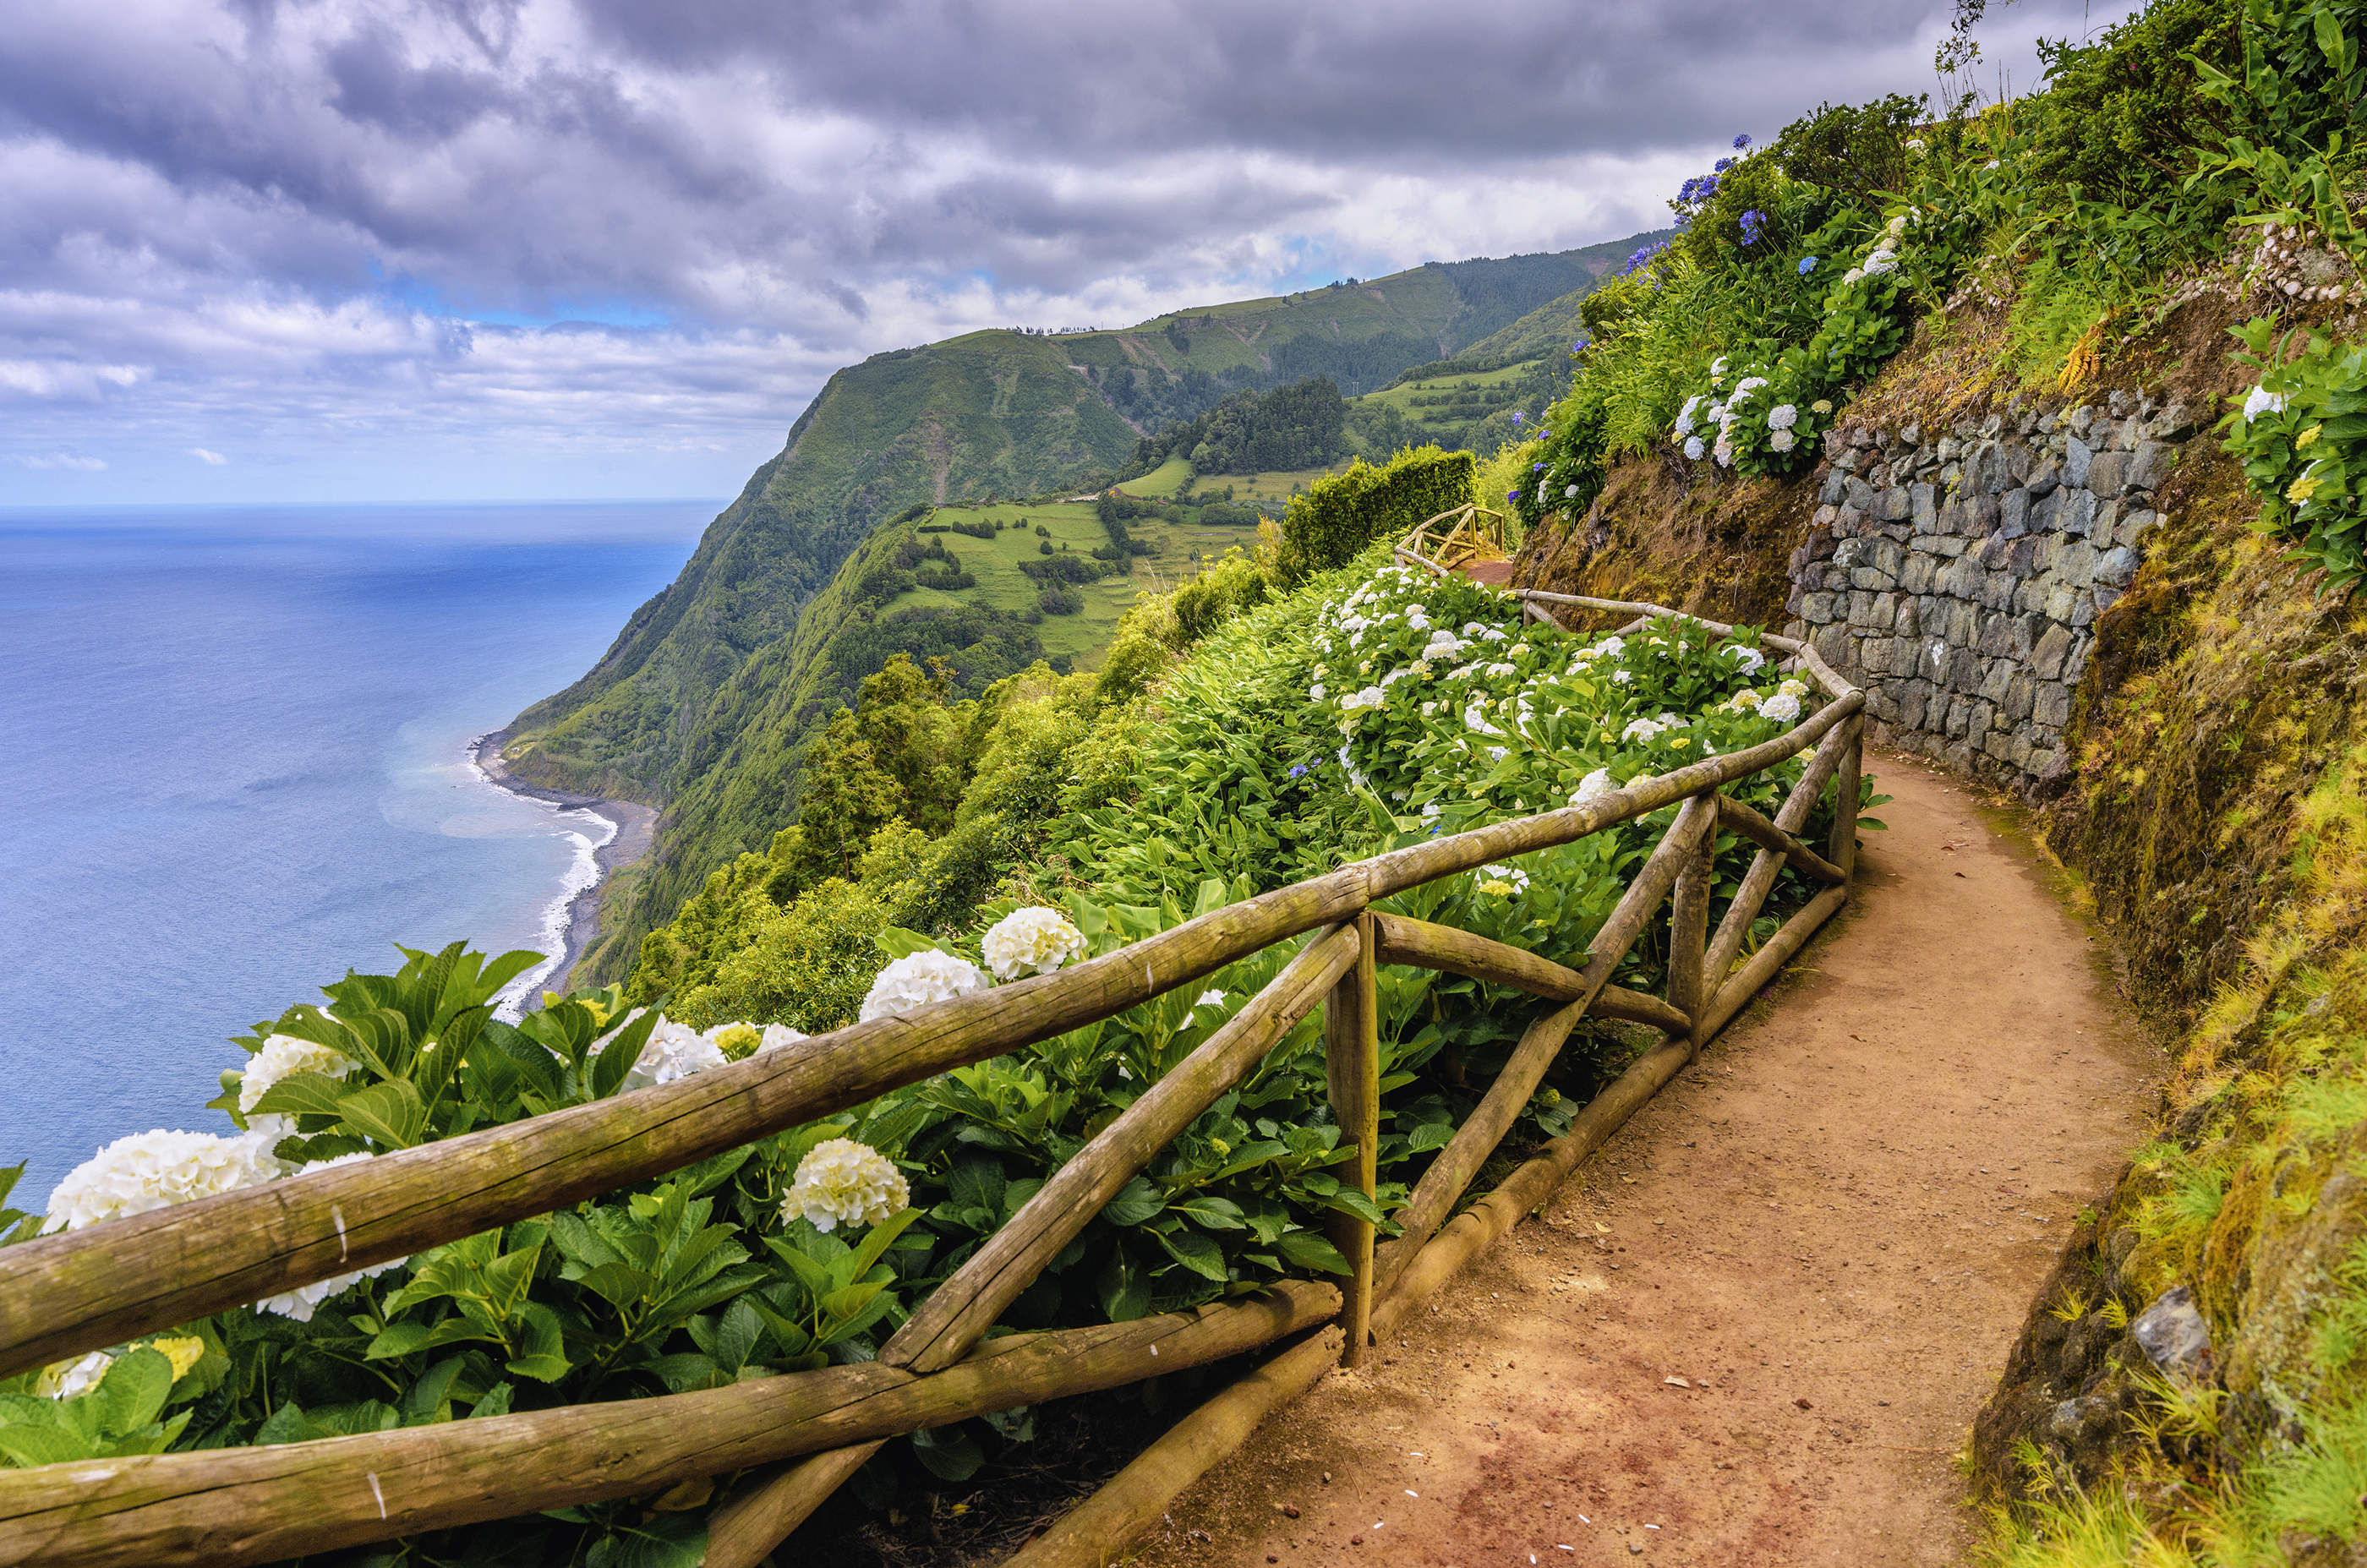 Hiking path along hydragenia and dramatic landscape near Nordeste, Sao Miguel (Azores)